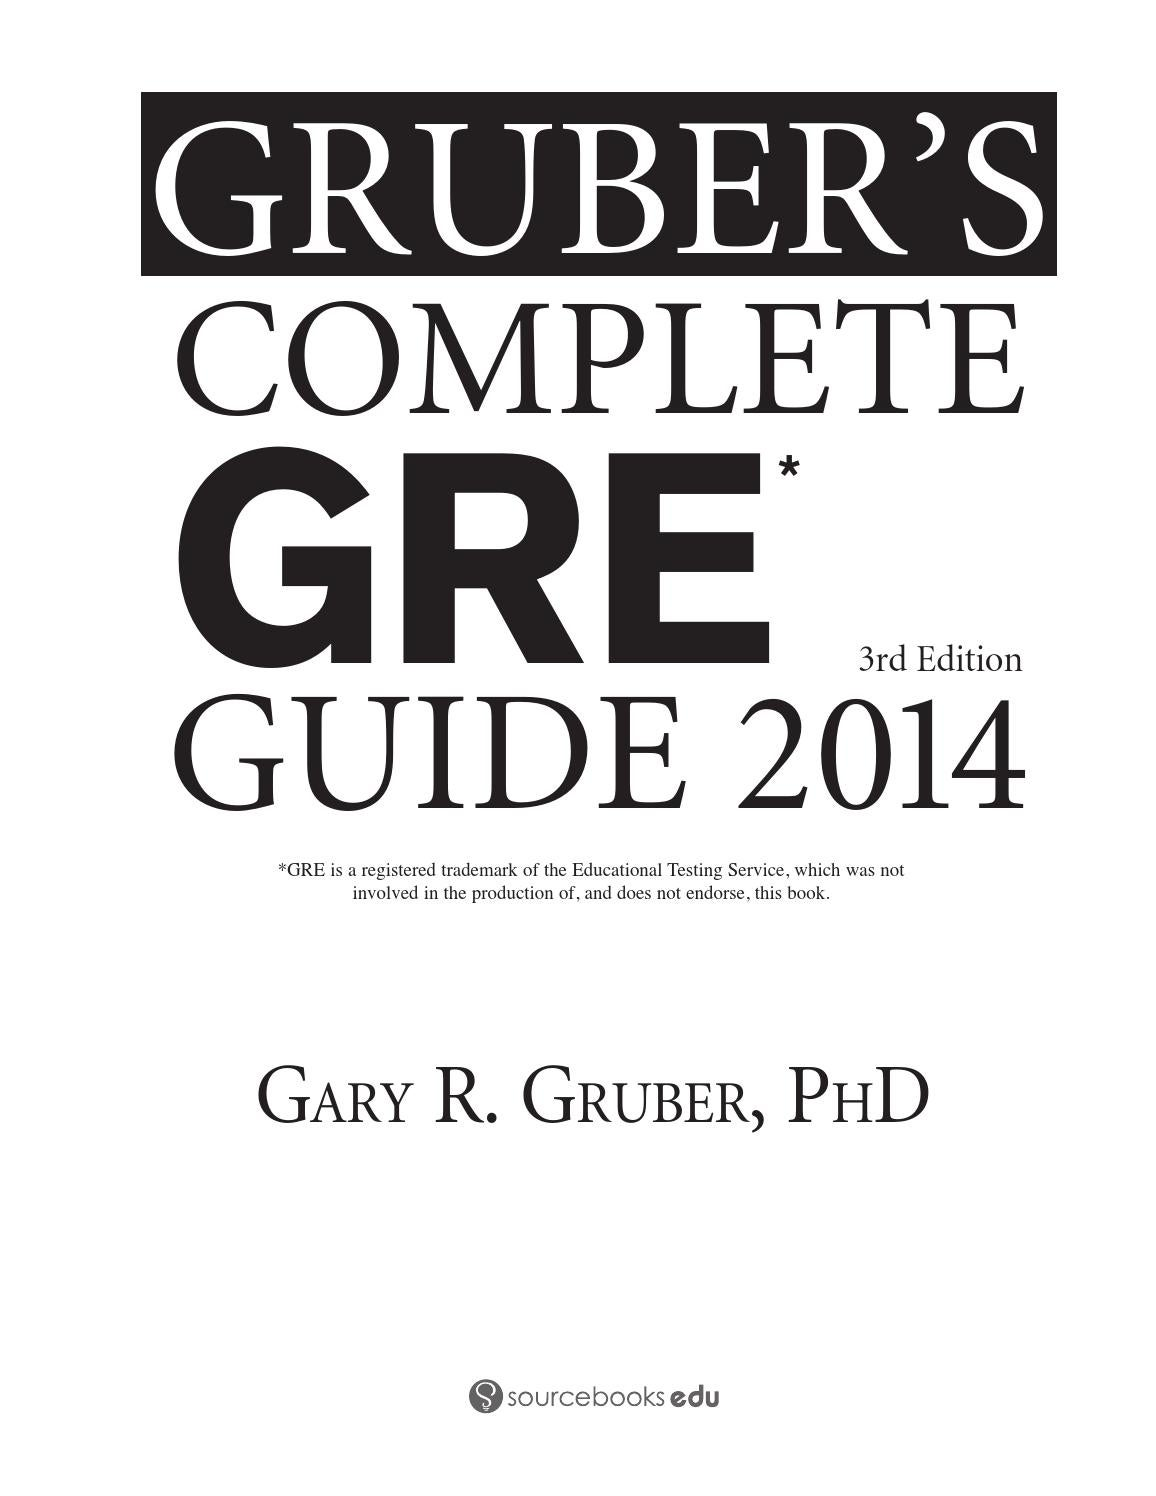 Preview gruber's complete gre guide 2014 by tusachduhoc